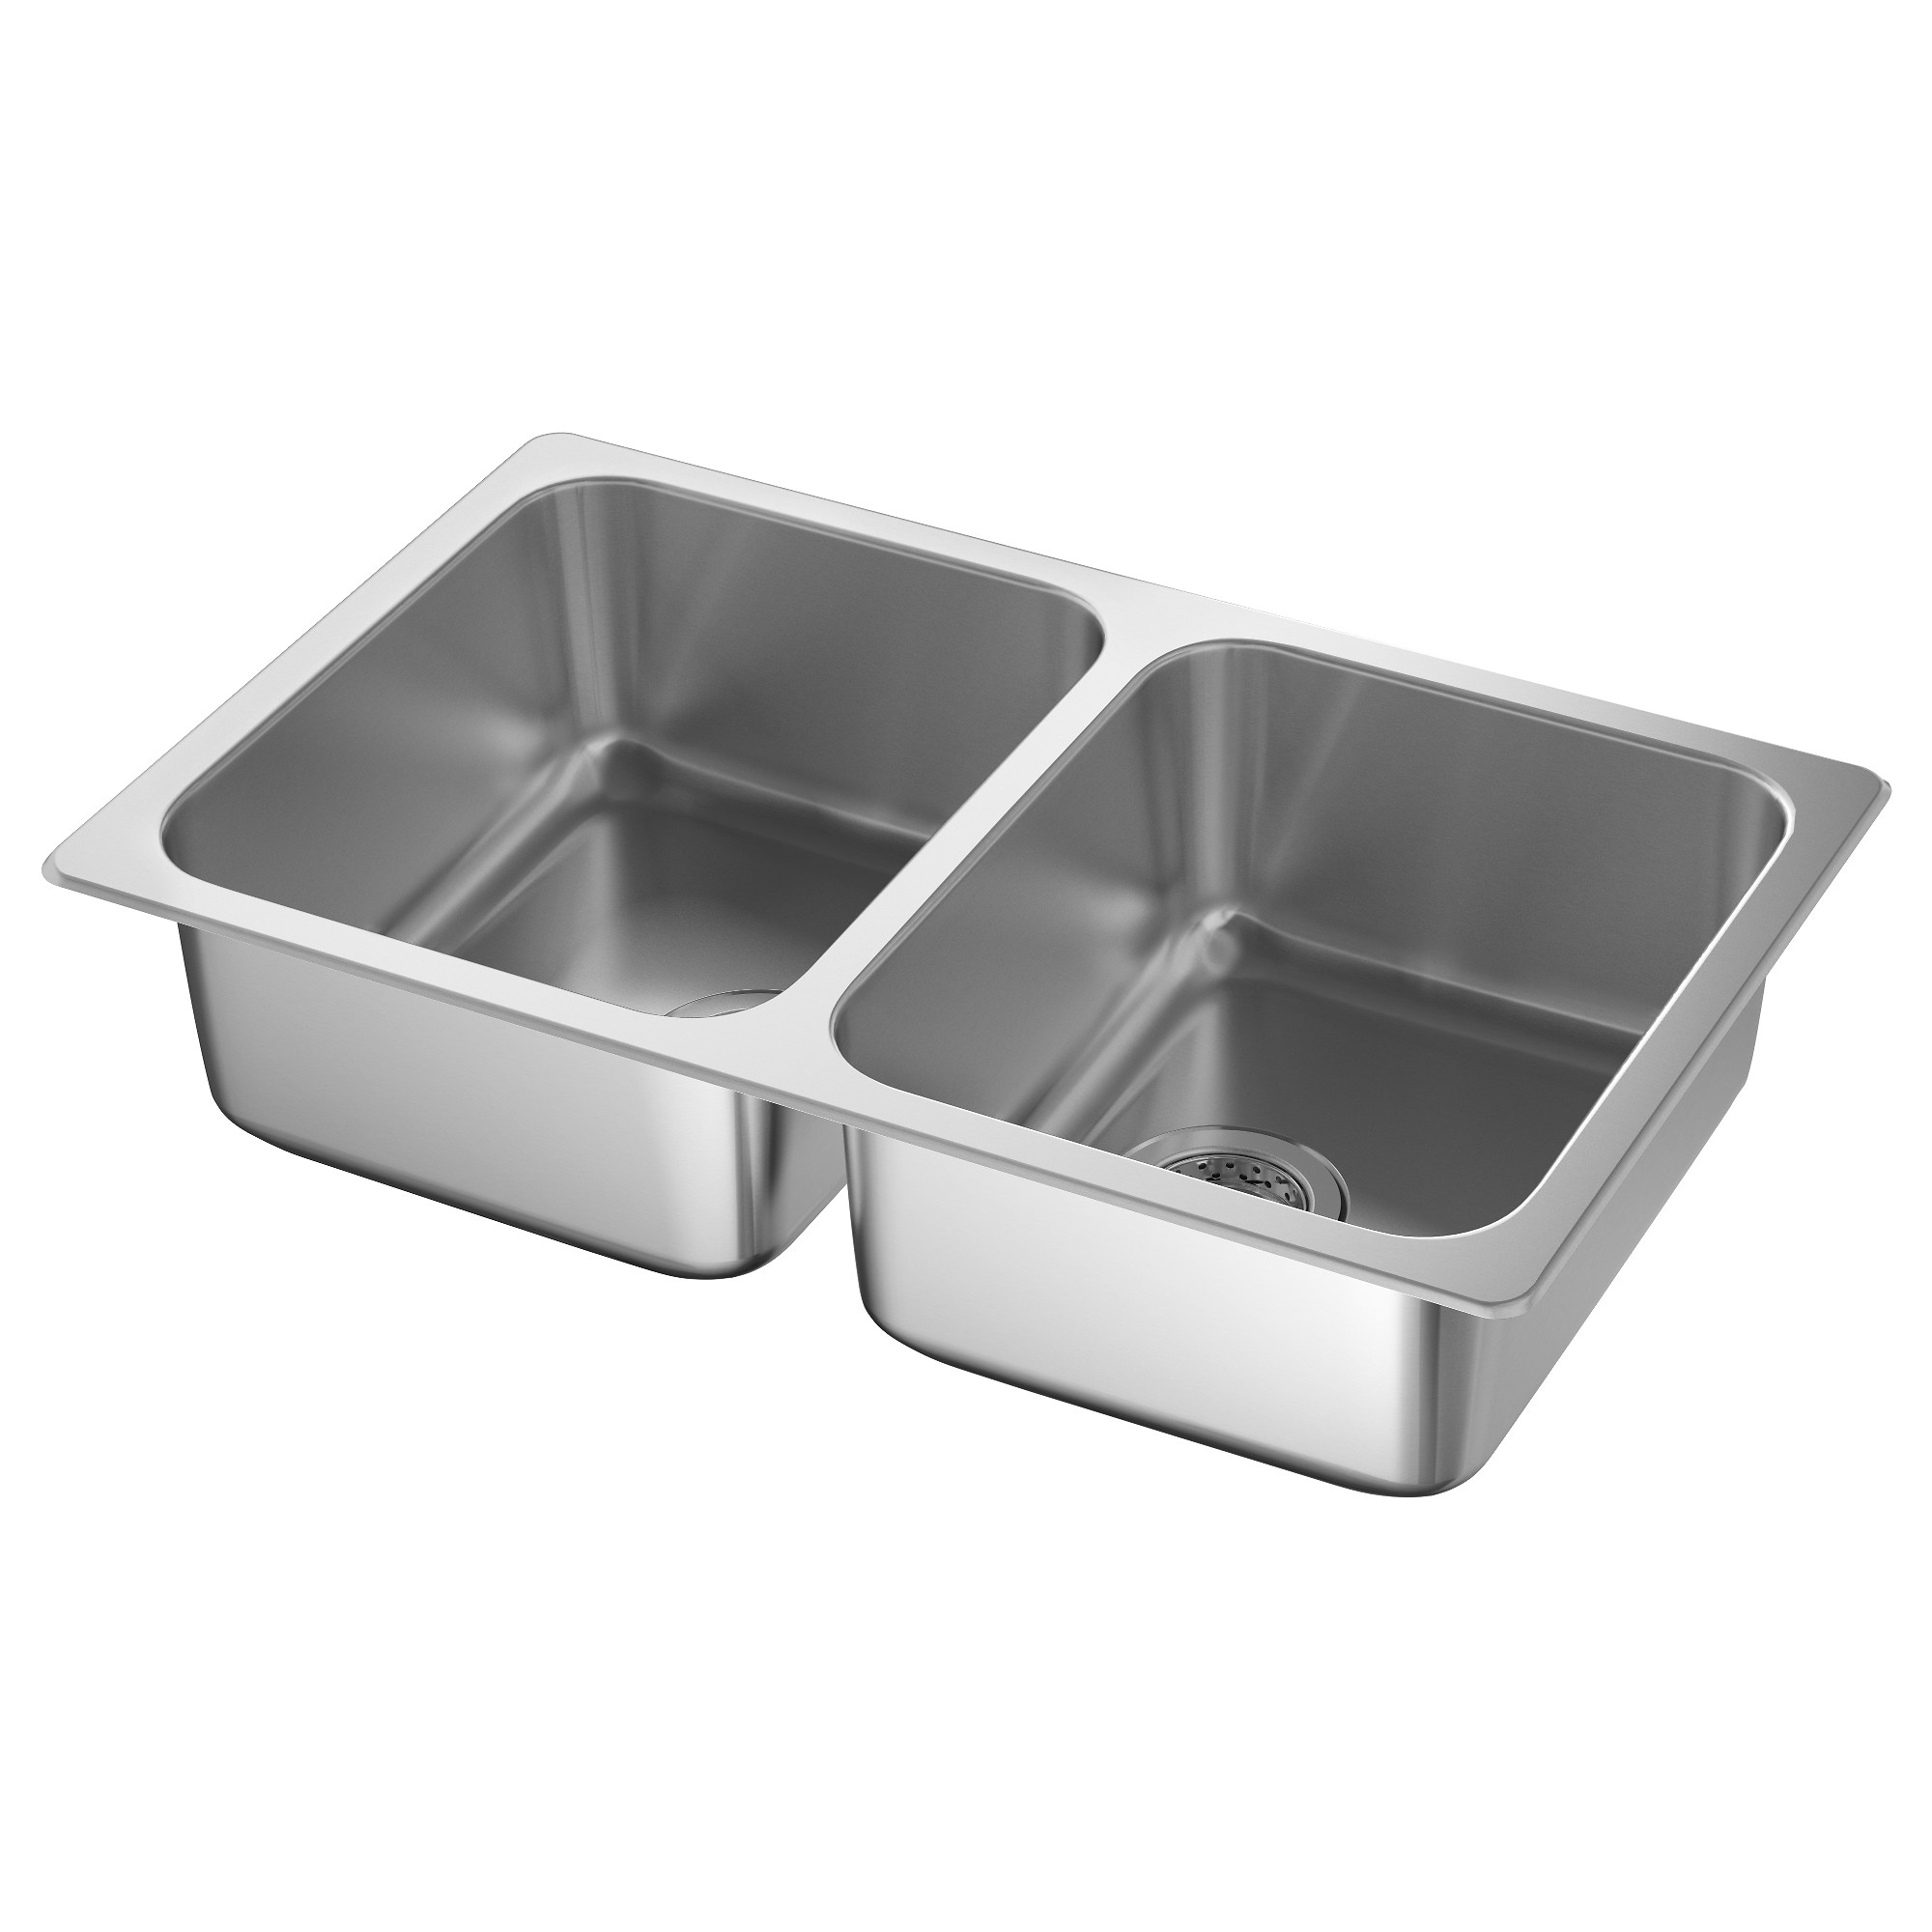 HILLESJÖN Double Bowl Top Mount Sink, Stainless Steel Cut Out Measurement  Width: 17